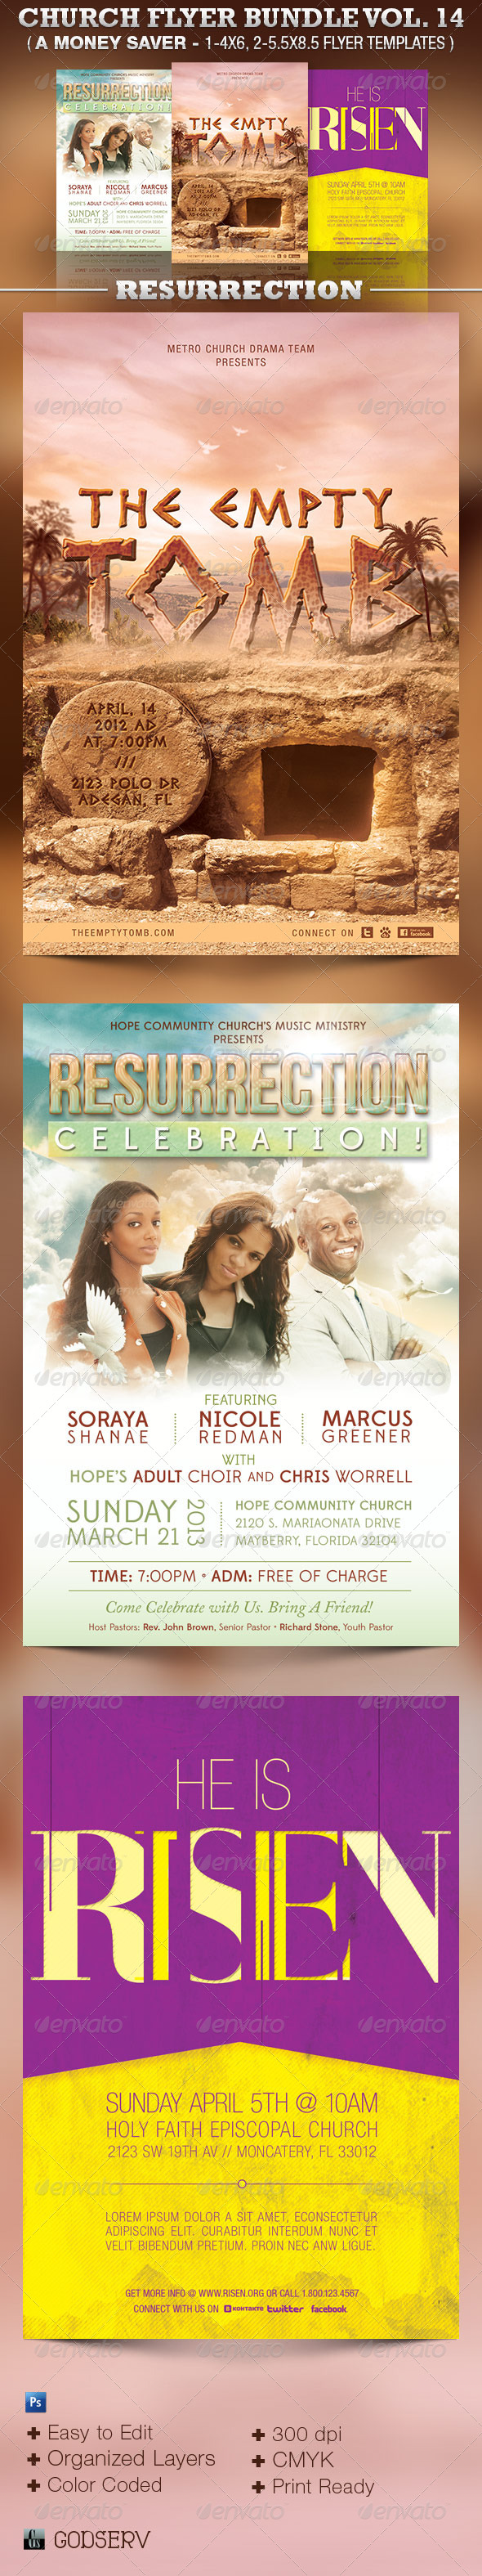 Church Flyer Template Bundle Vol 14: Resurrection - Church Flyers